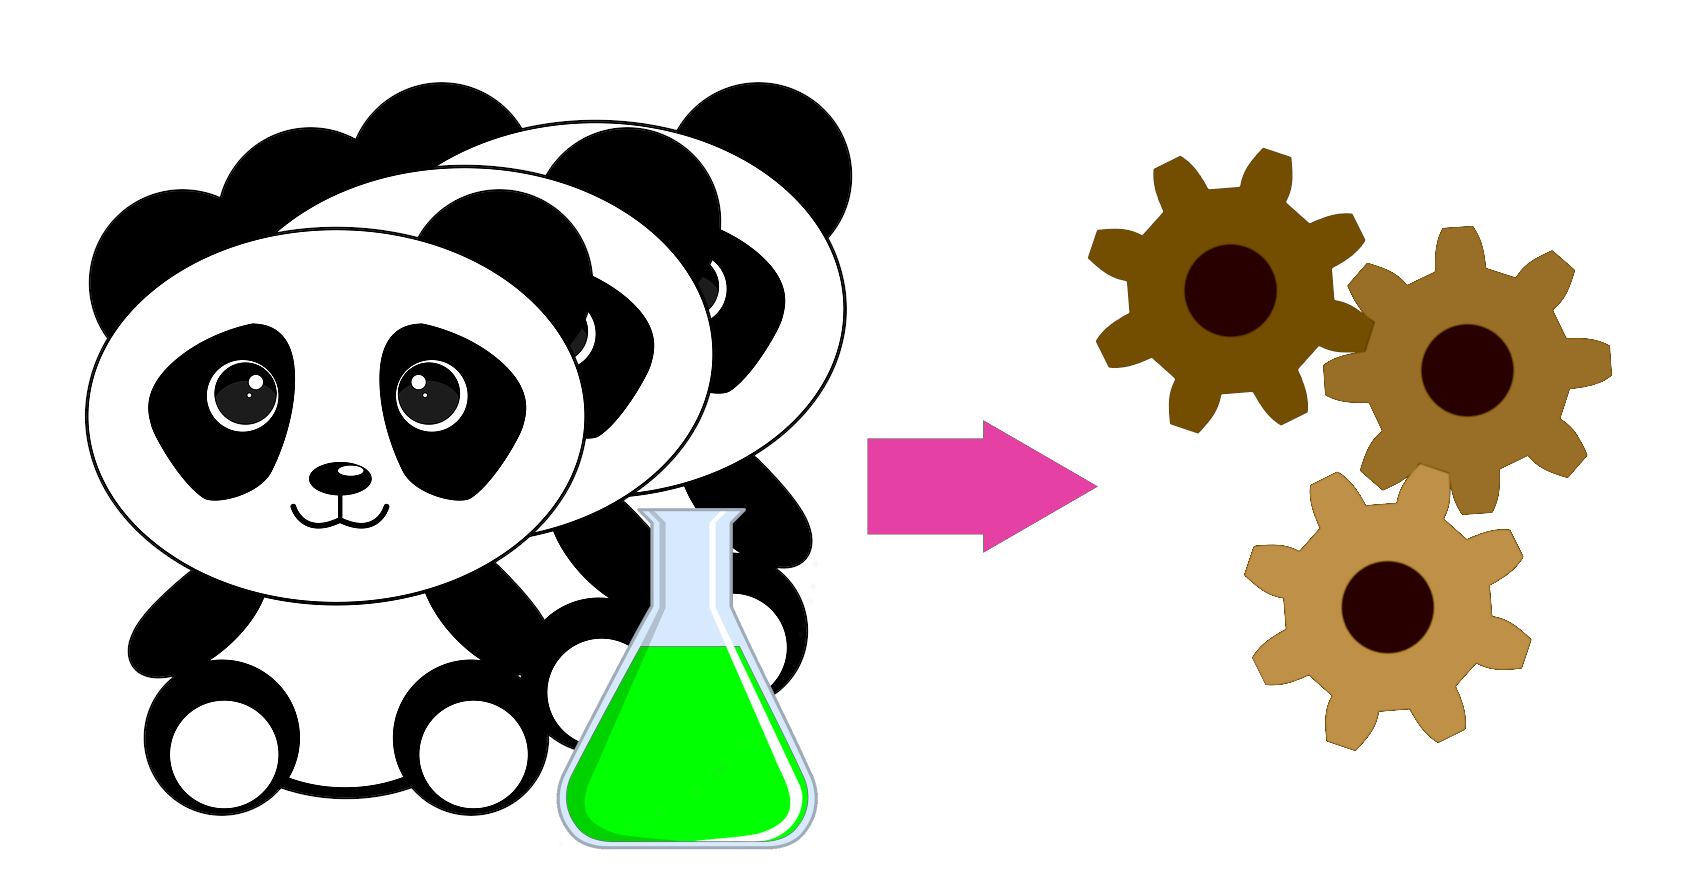 Some pandas doing alchemy leading to moving procedural gears